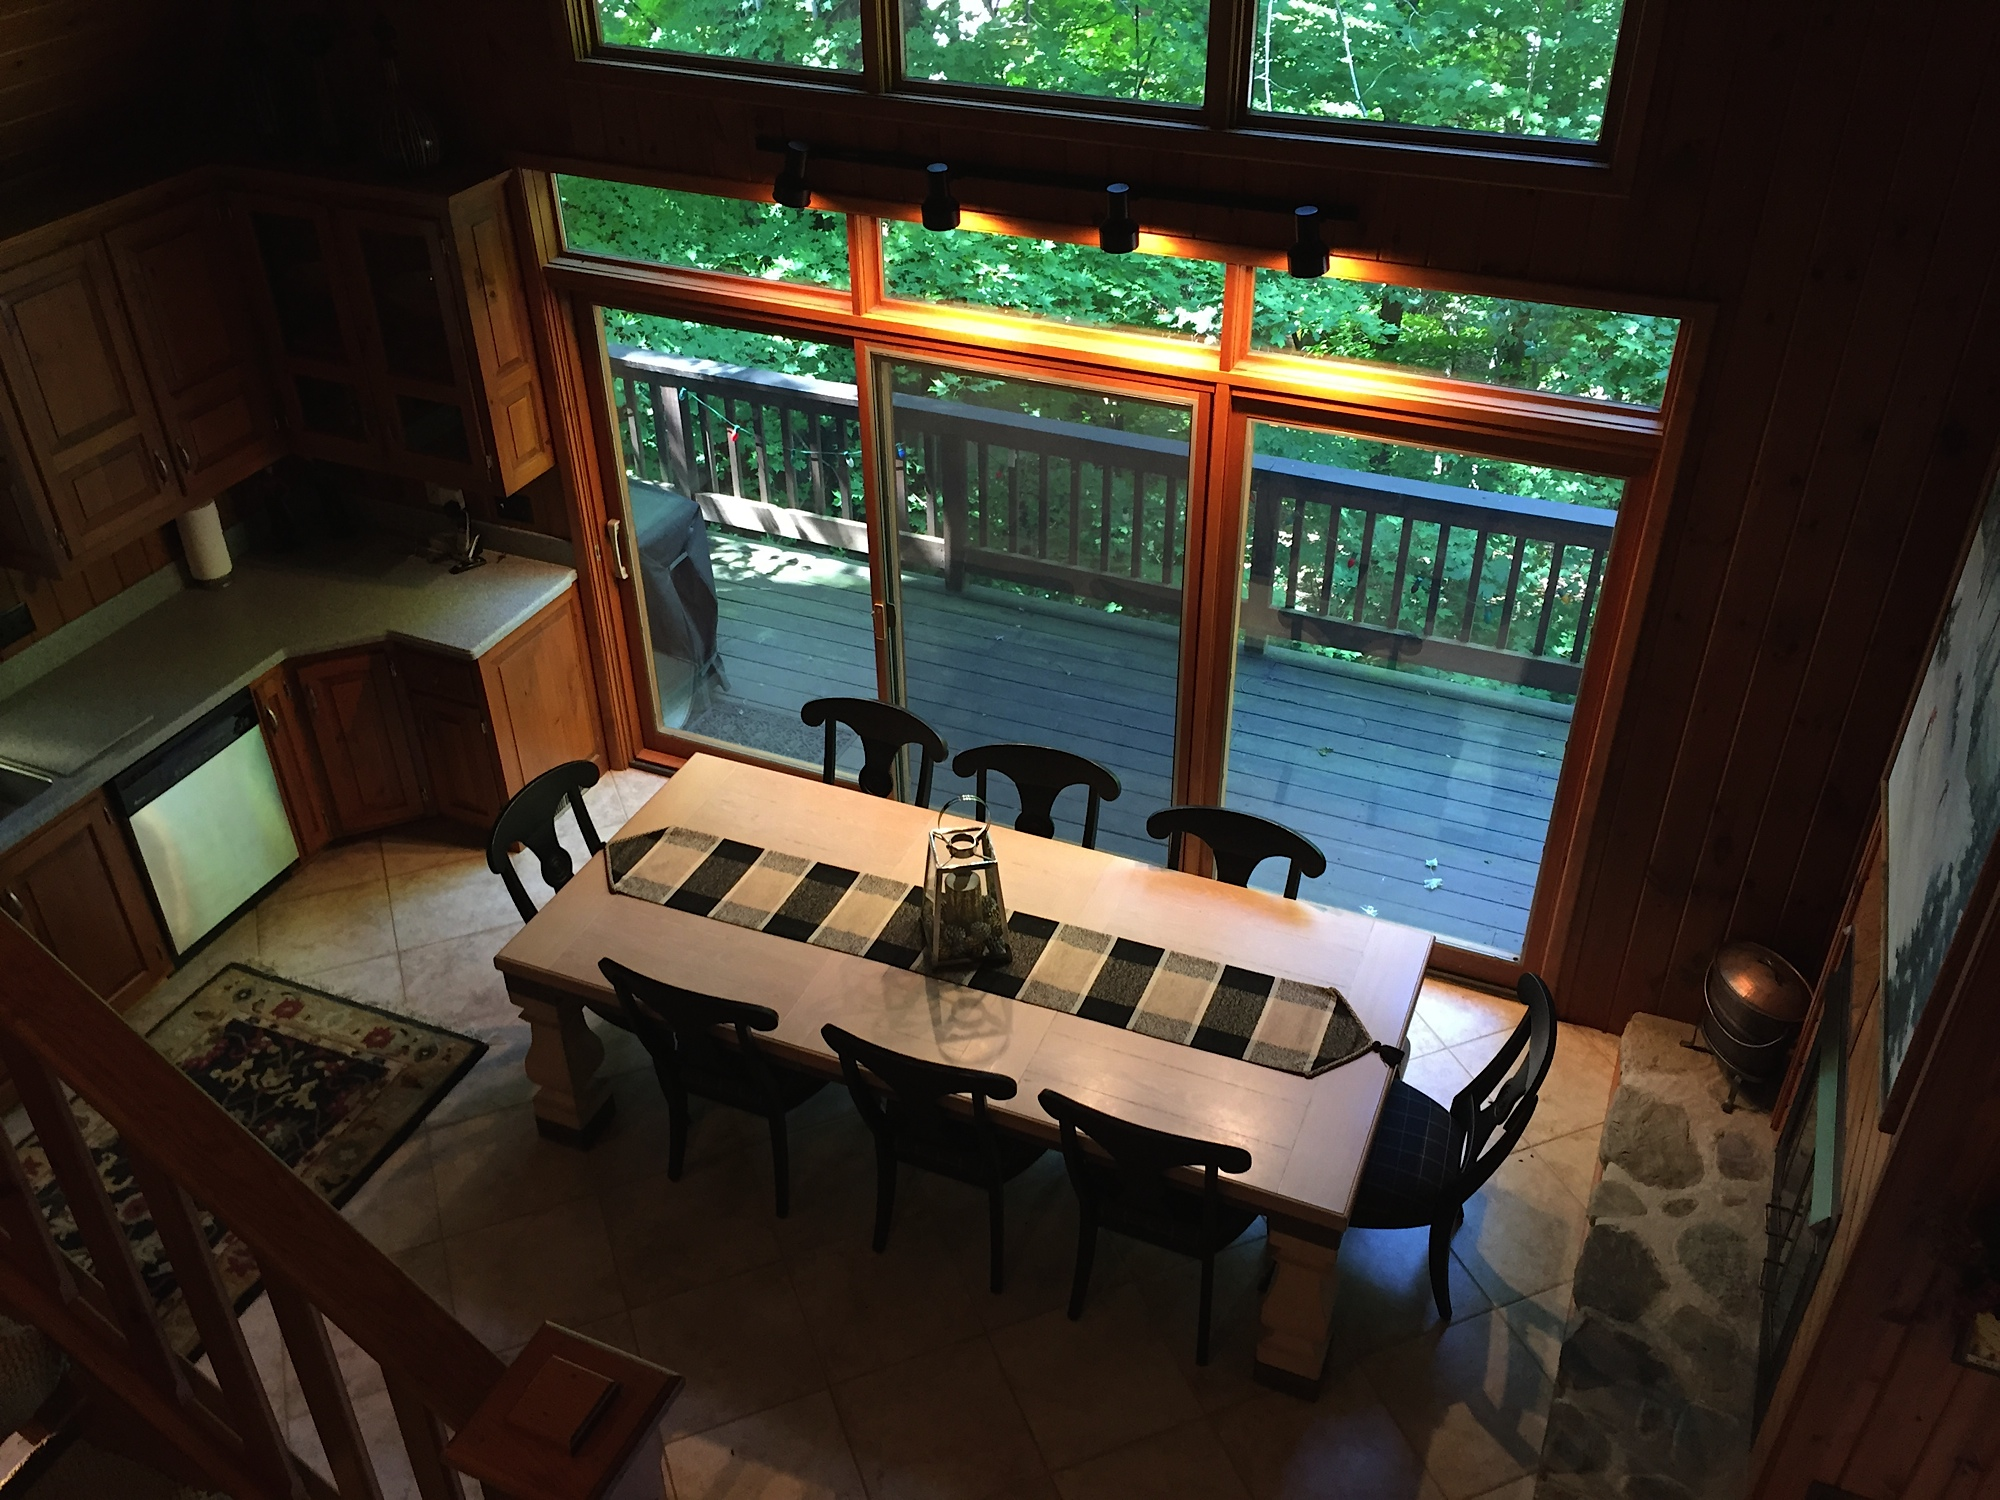 Upstairs View of Dining Area